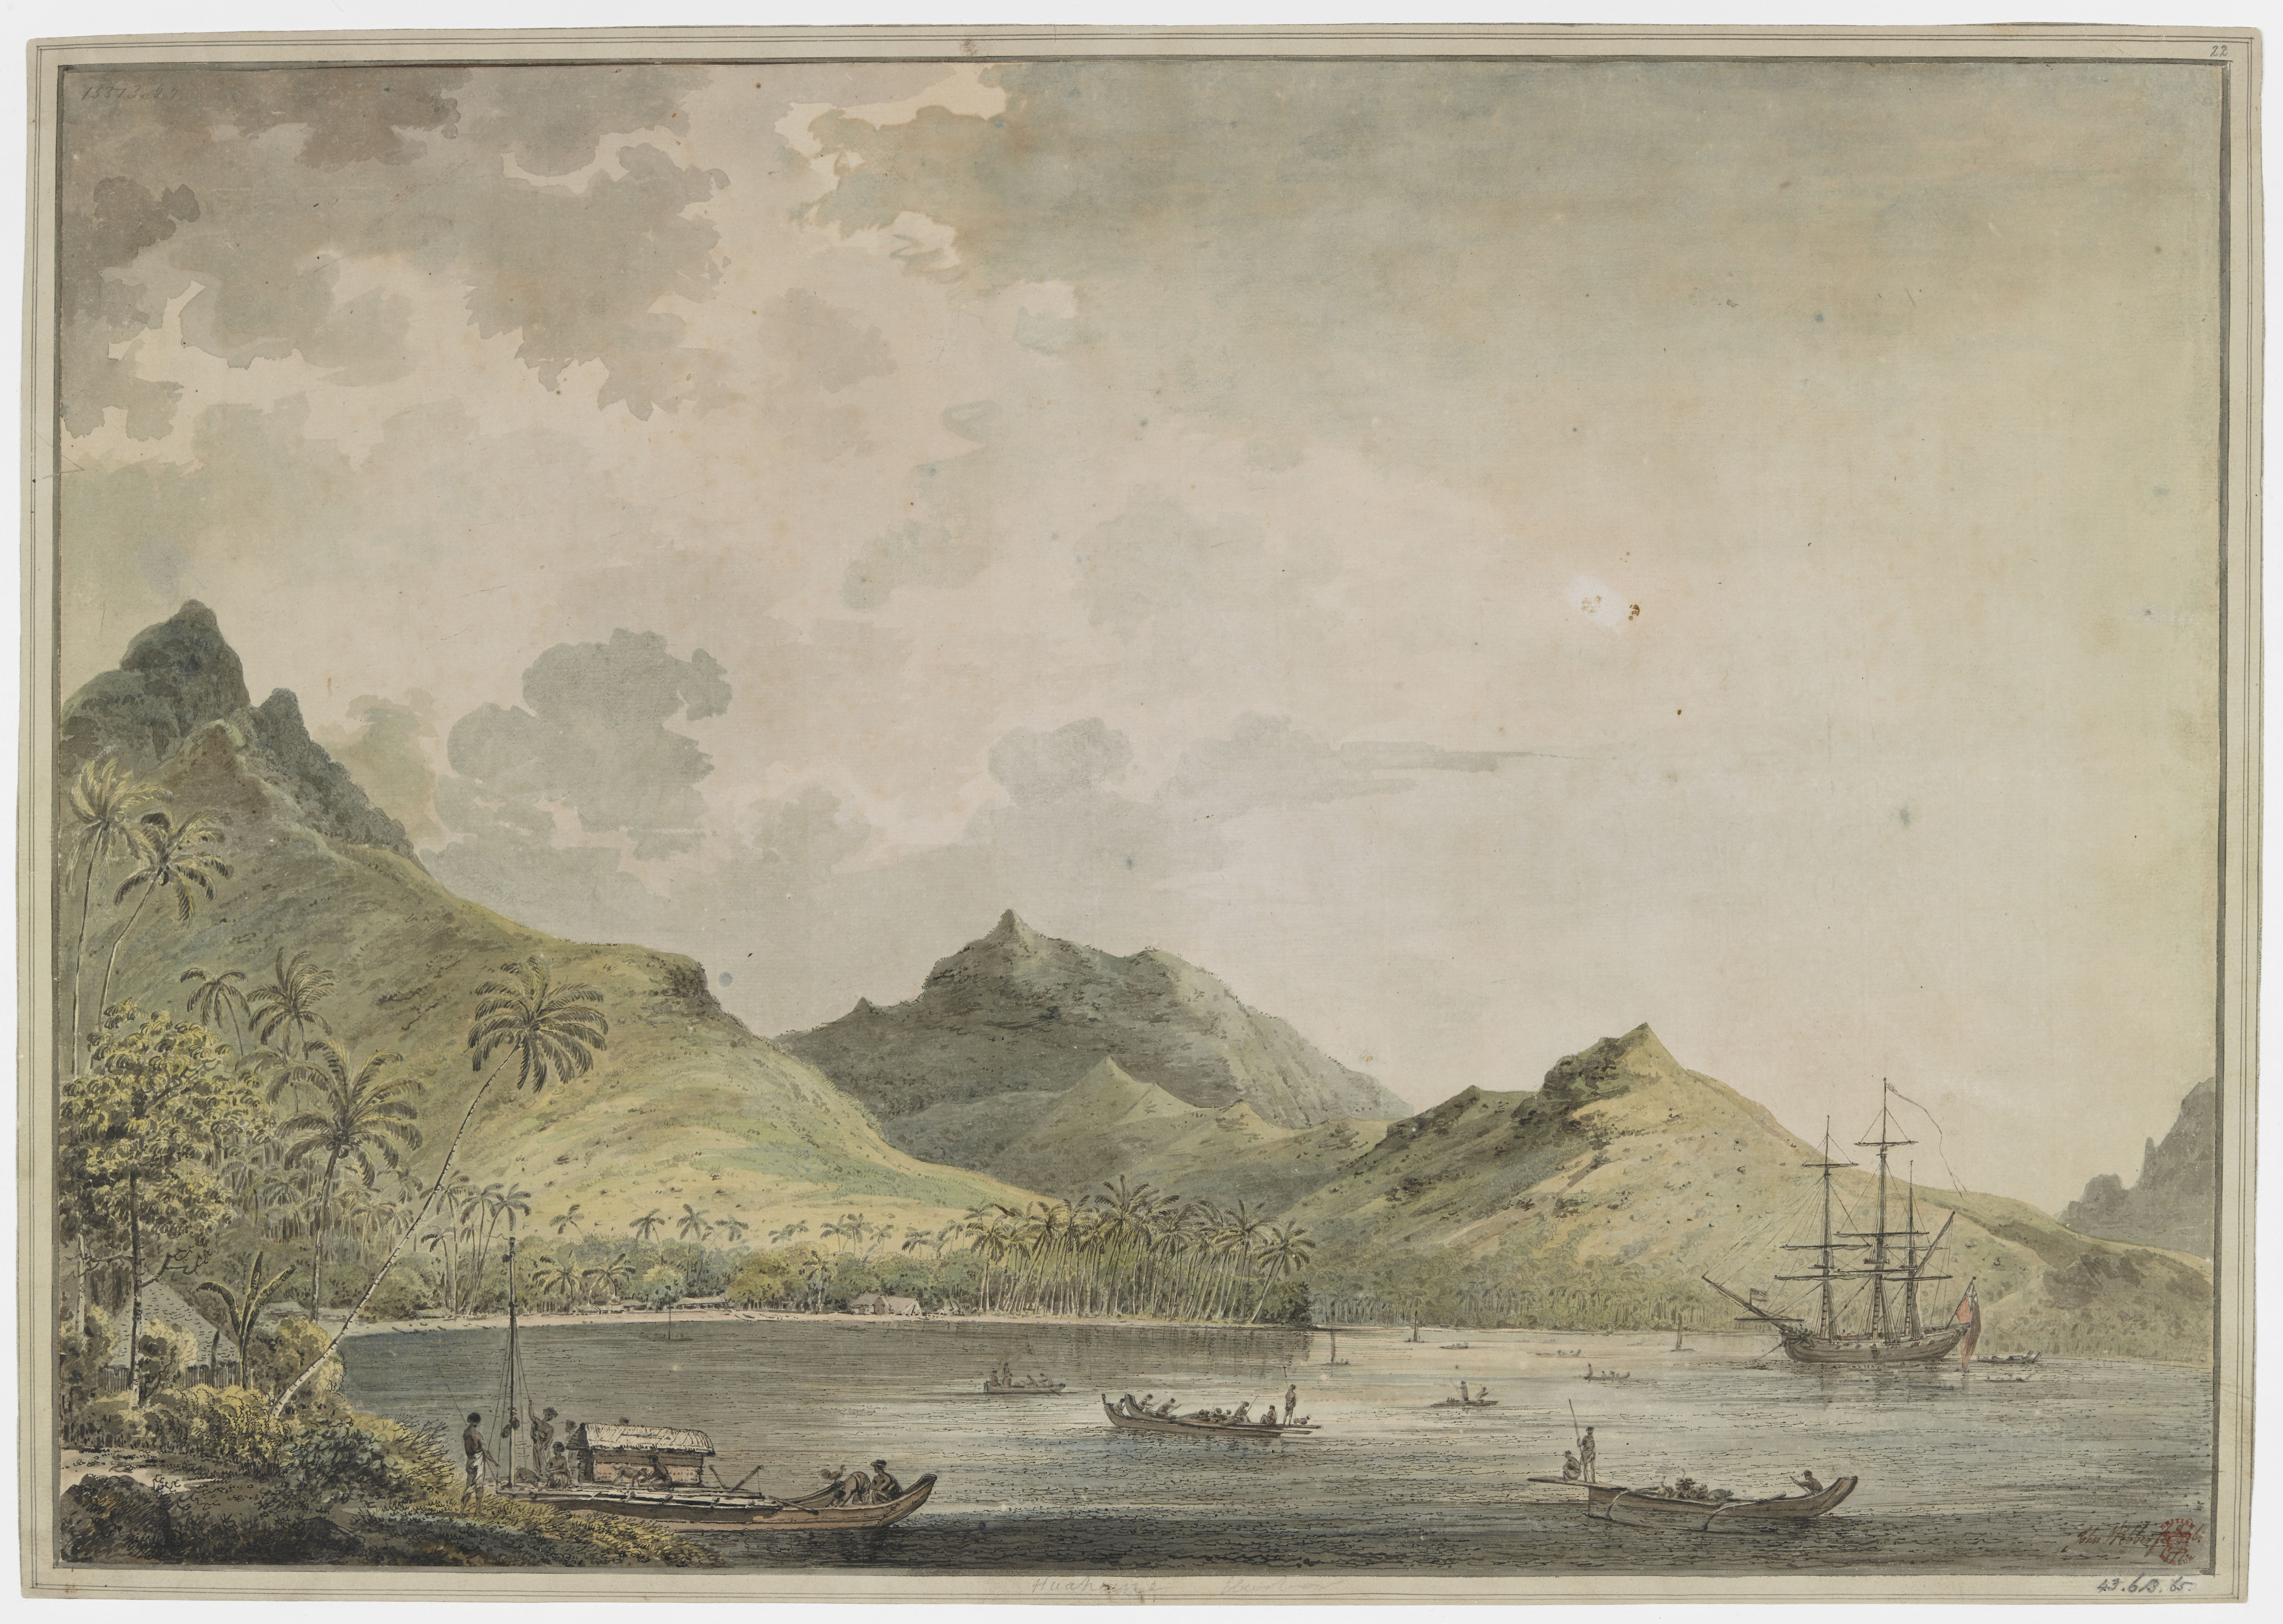 'View of the harbour of Huaheine' by John Webber, 1777